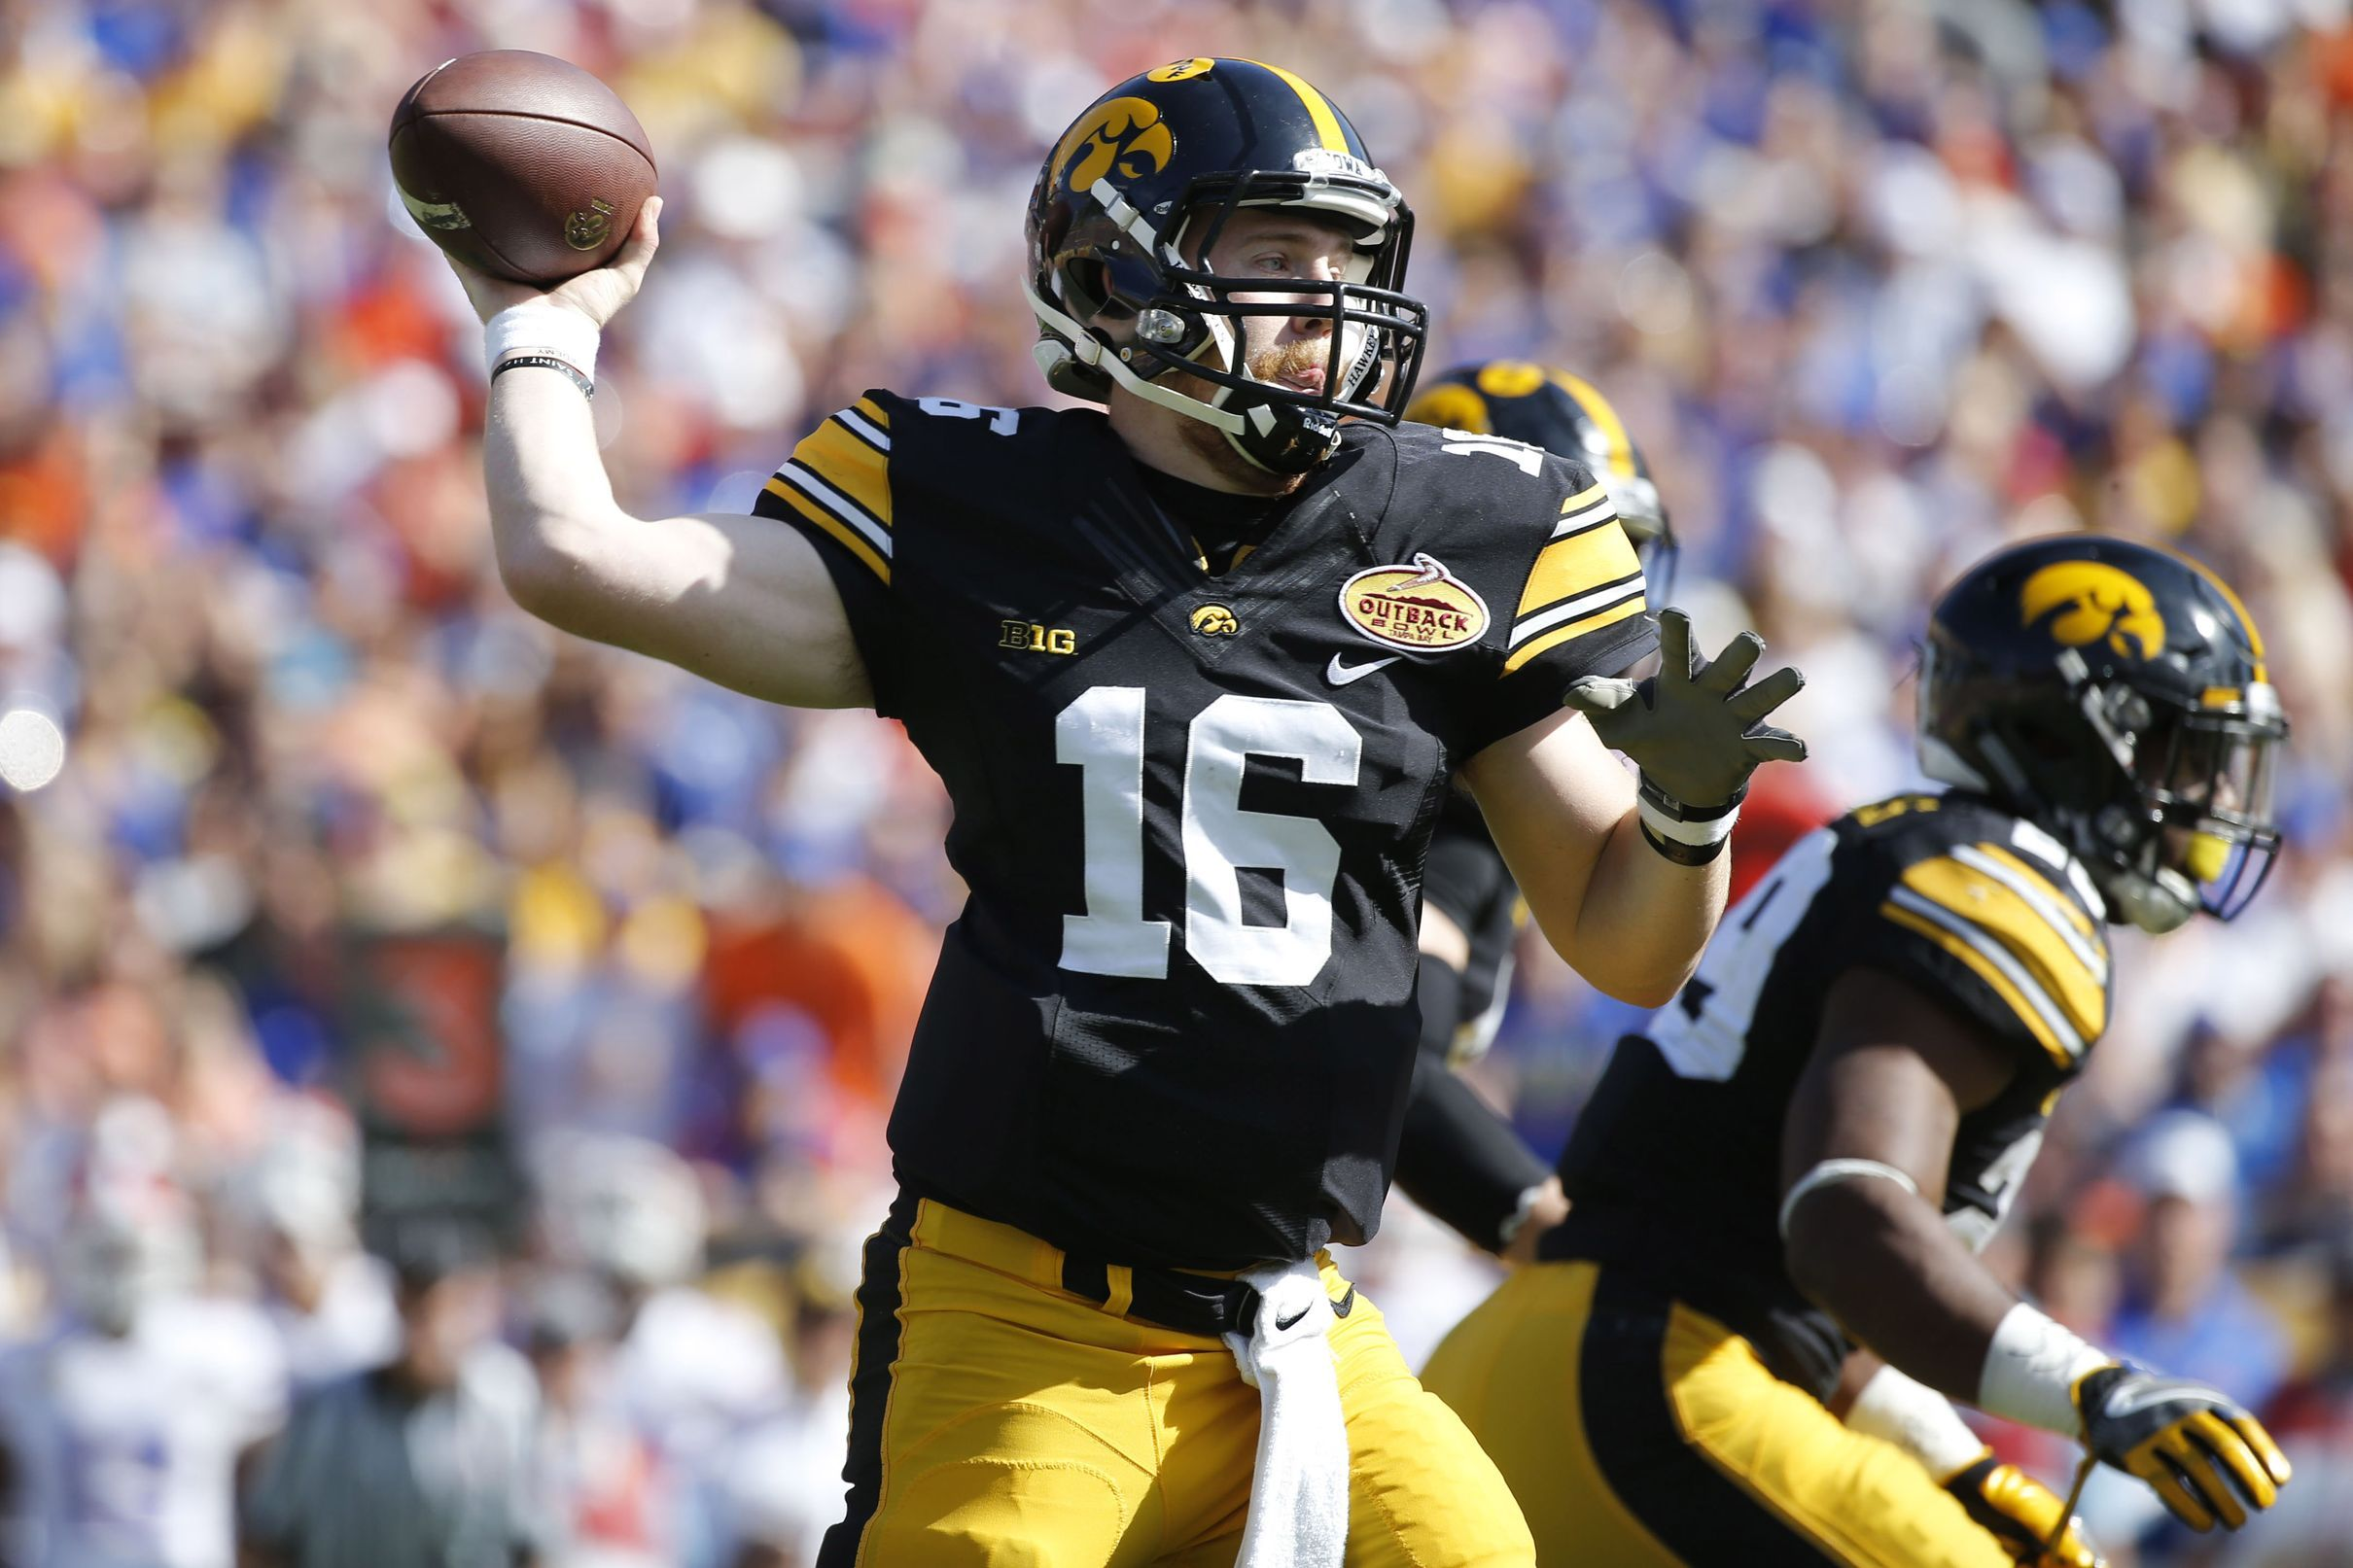 San Francisco 49ers Select C J Beathard With The 104th Pick In